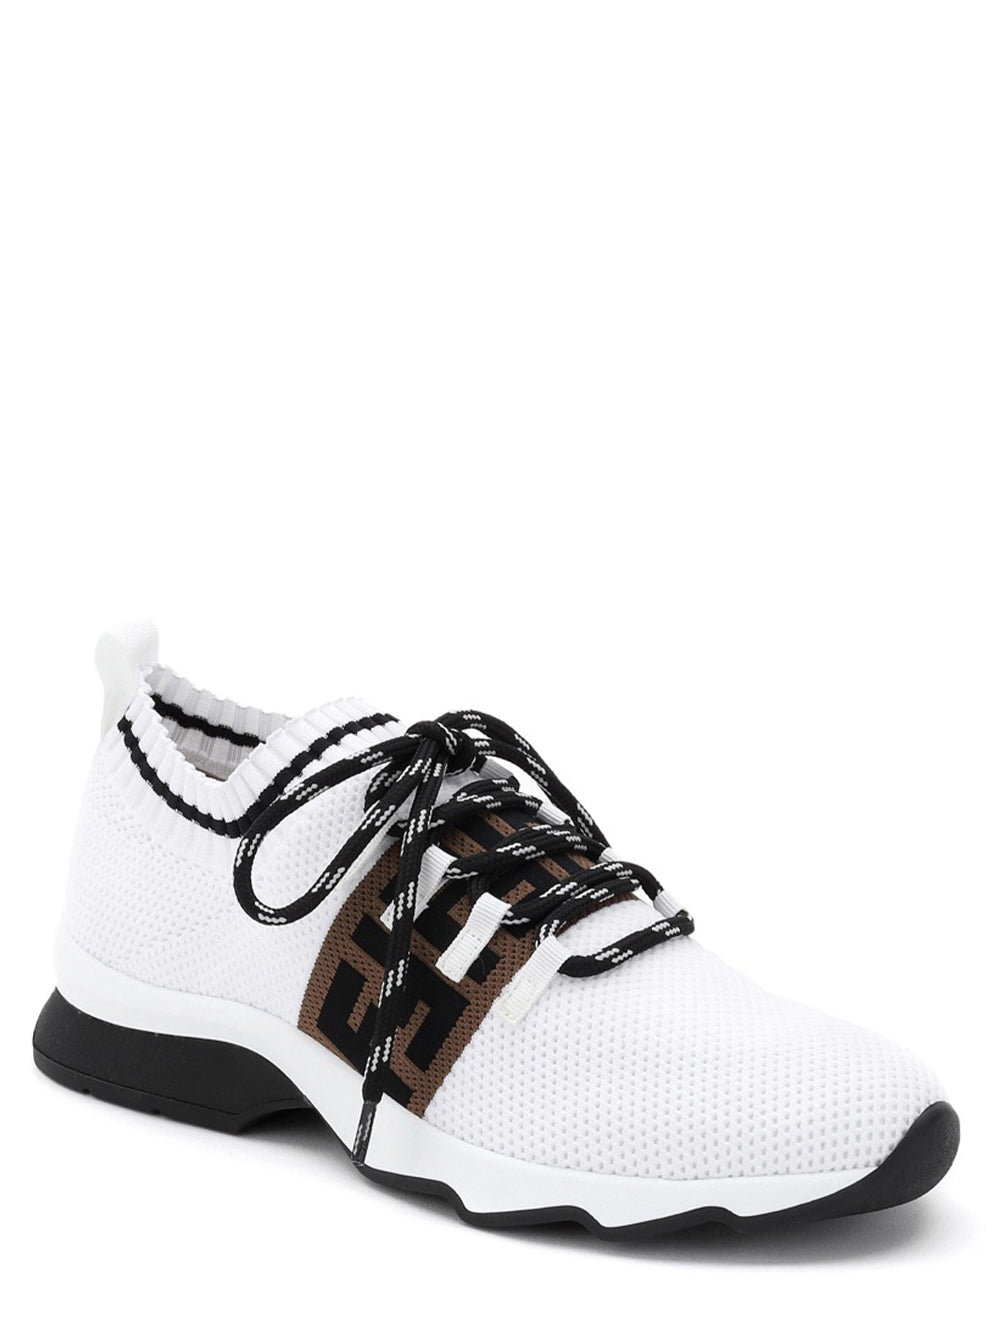 Fendi FF Low Sock Sneakers